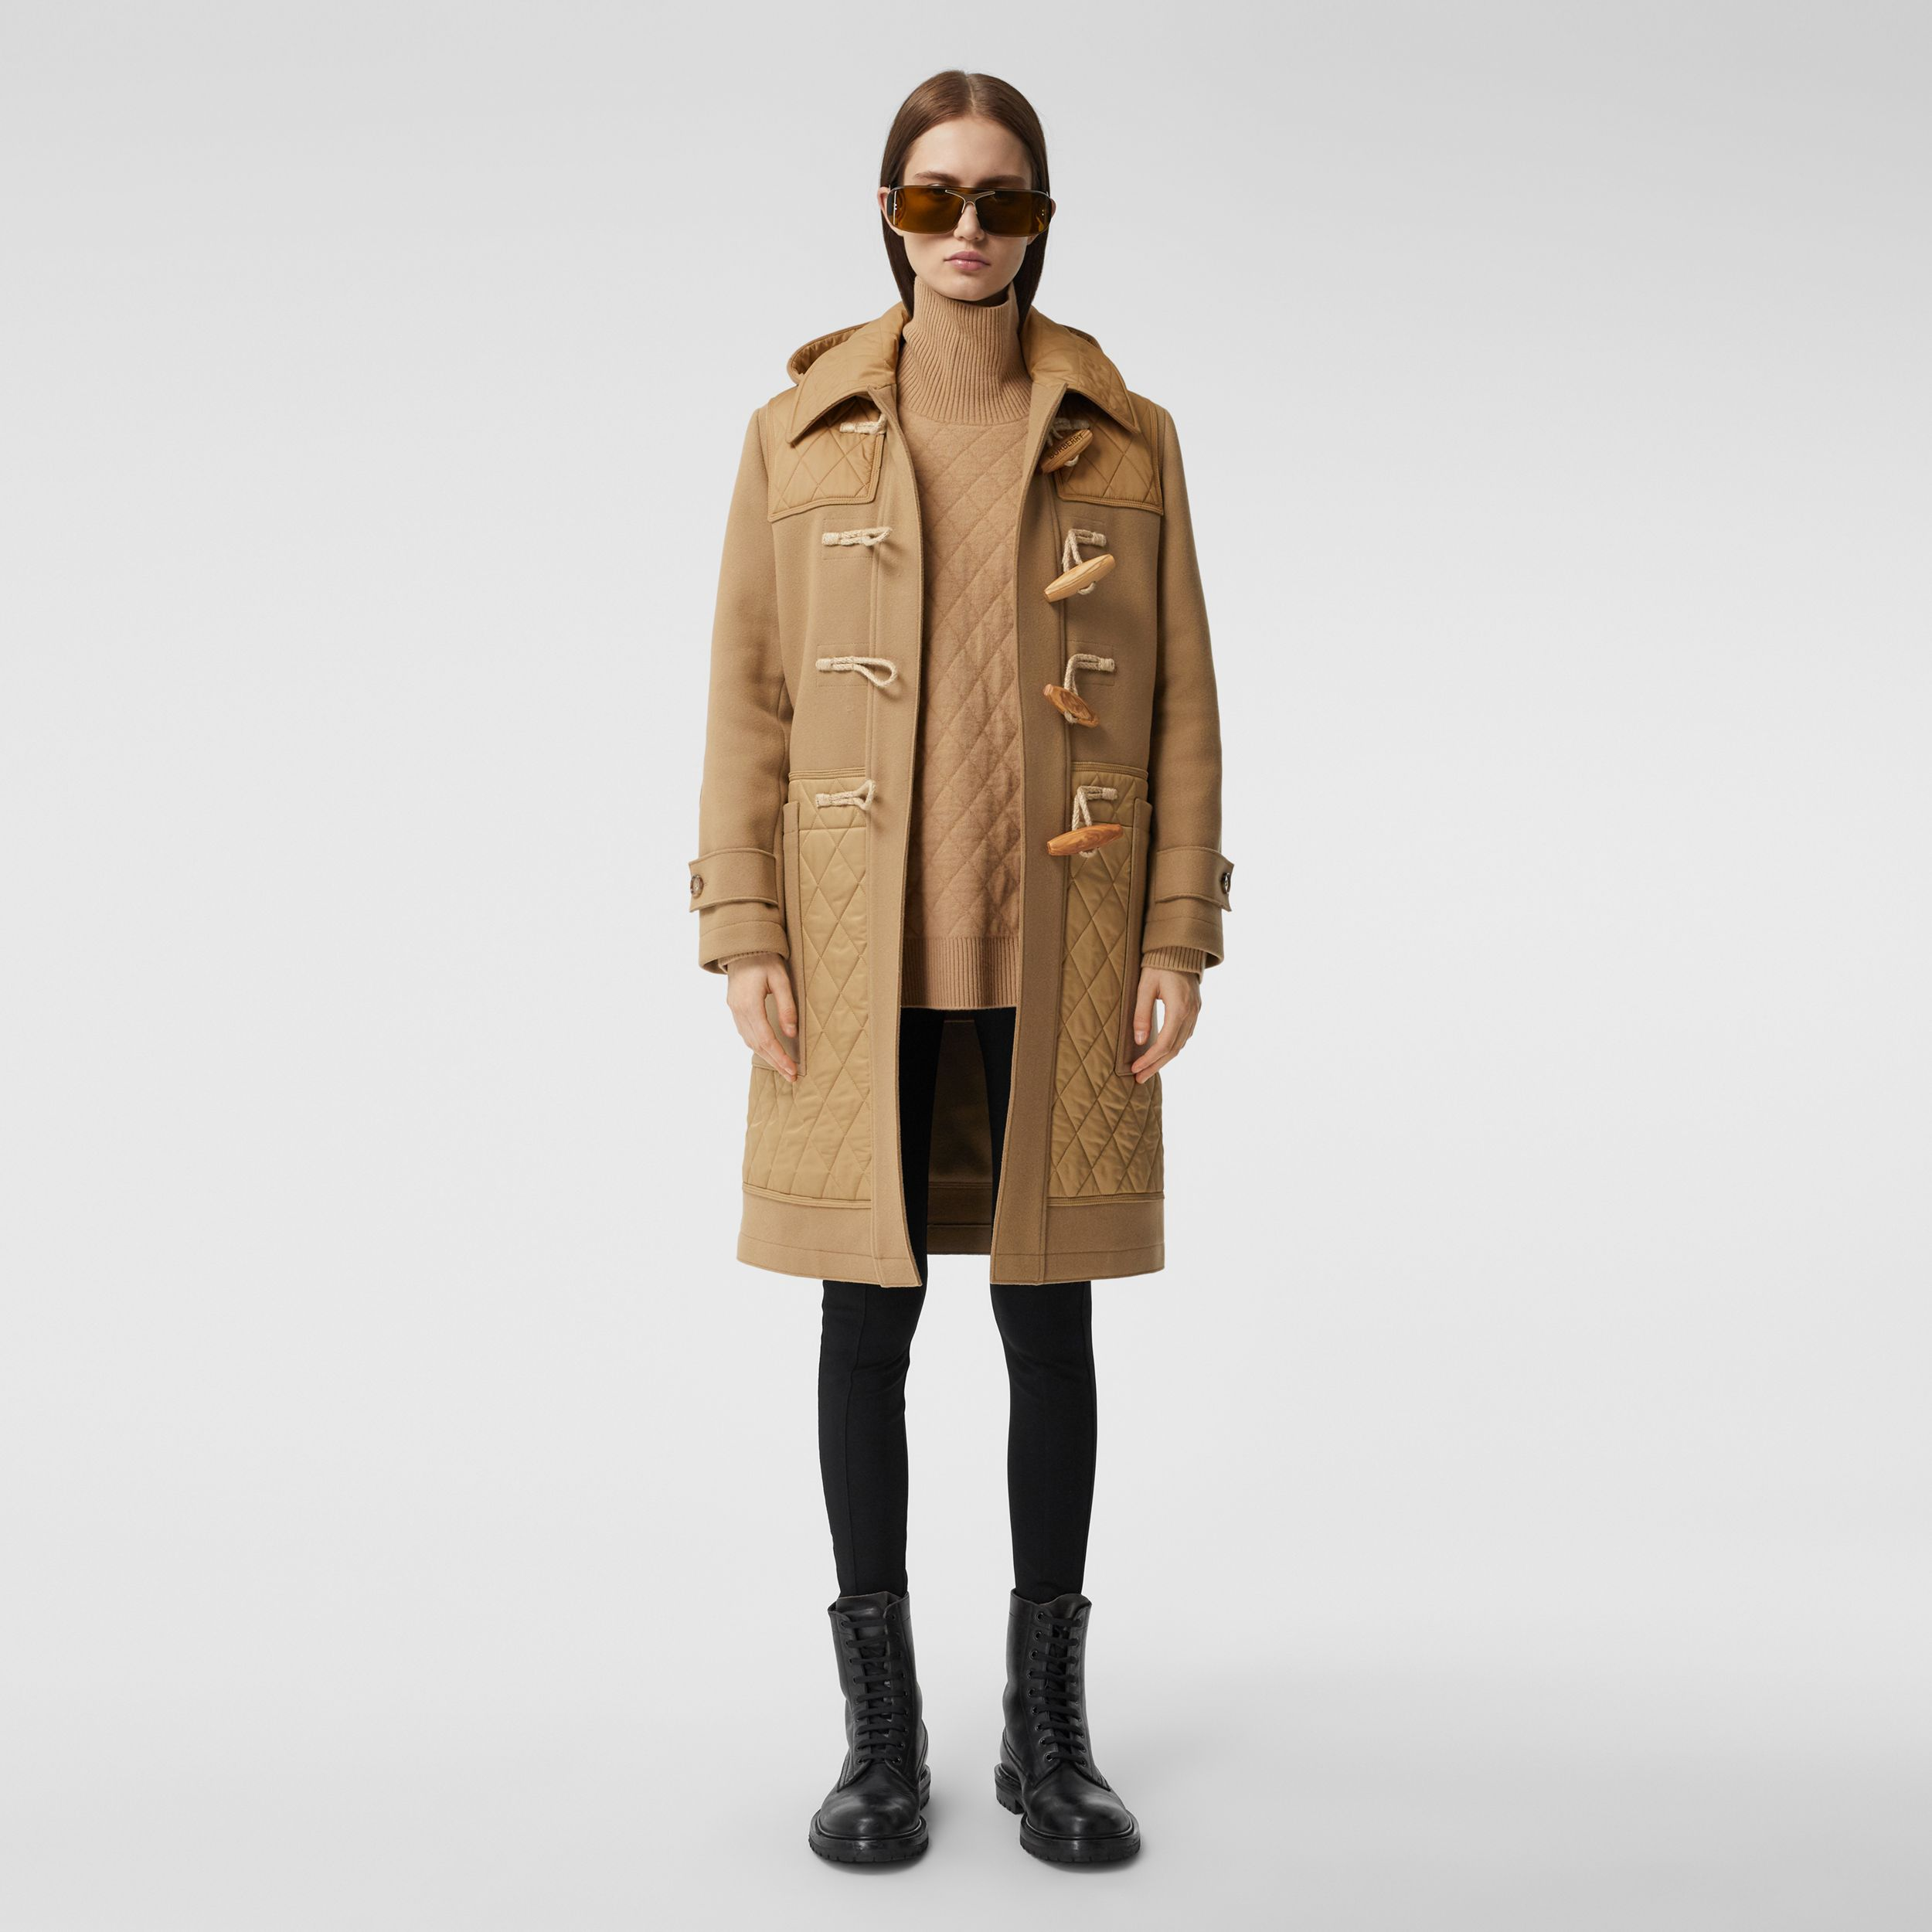 Diamond Quilted Panel Technical Wool Duffle Coat in Camel - Women | Burberry - 1